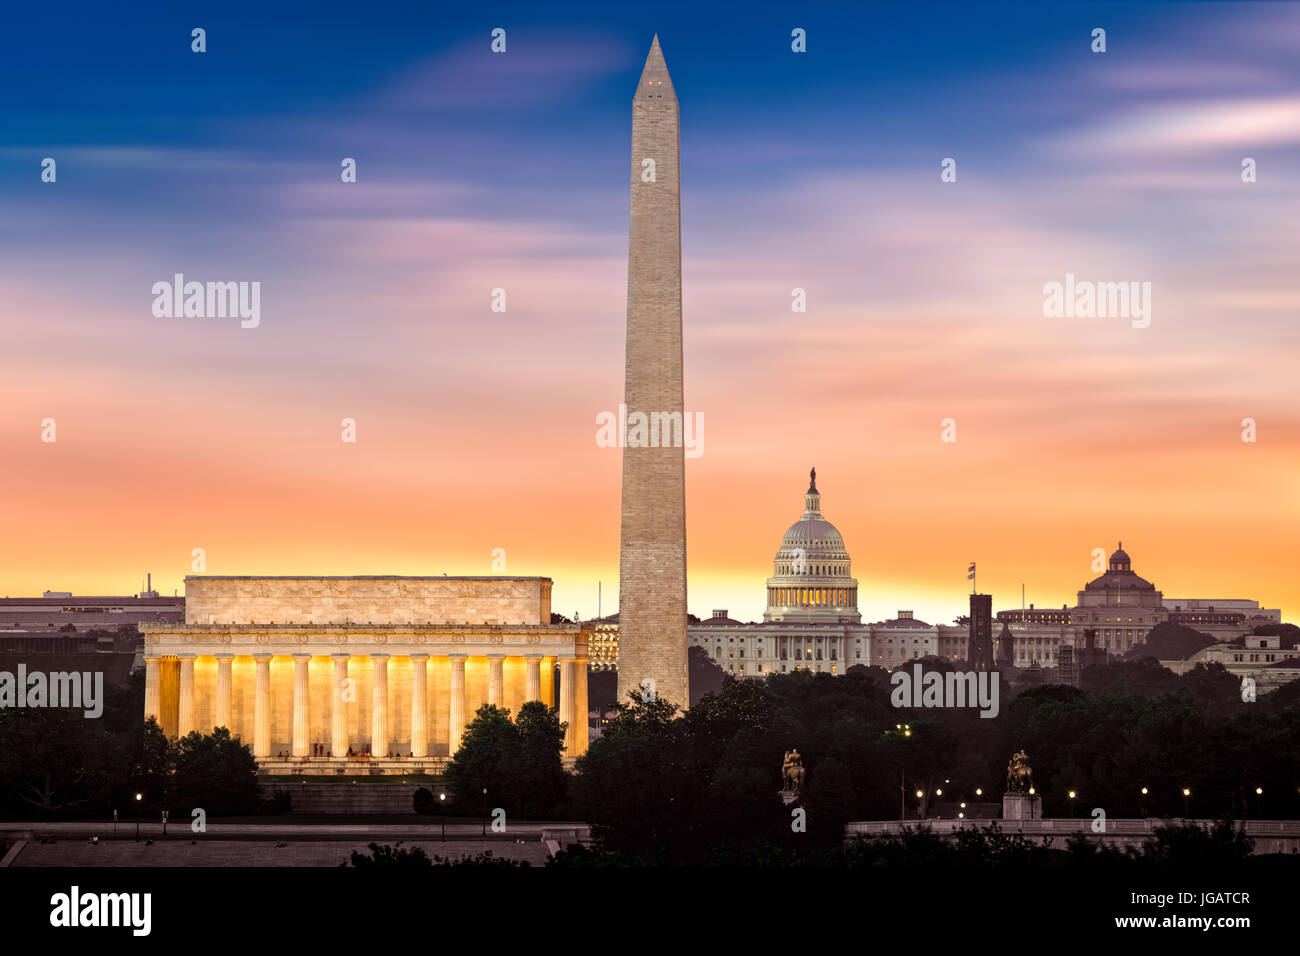 New Dawn over Washington - with 3 iconic monuments illuminated at sunrise: Lincoln Memorial, Washington Monument - Stock Image